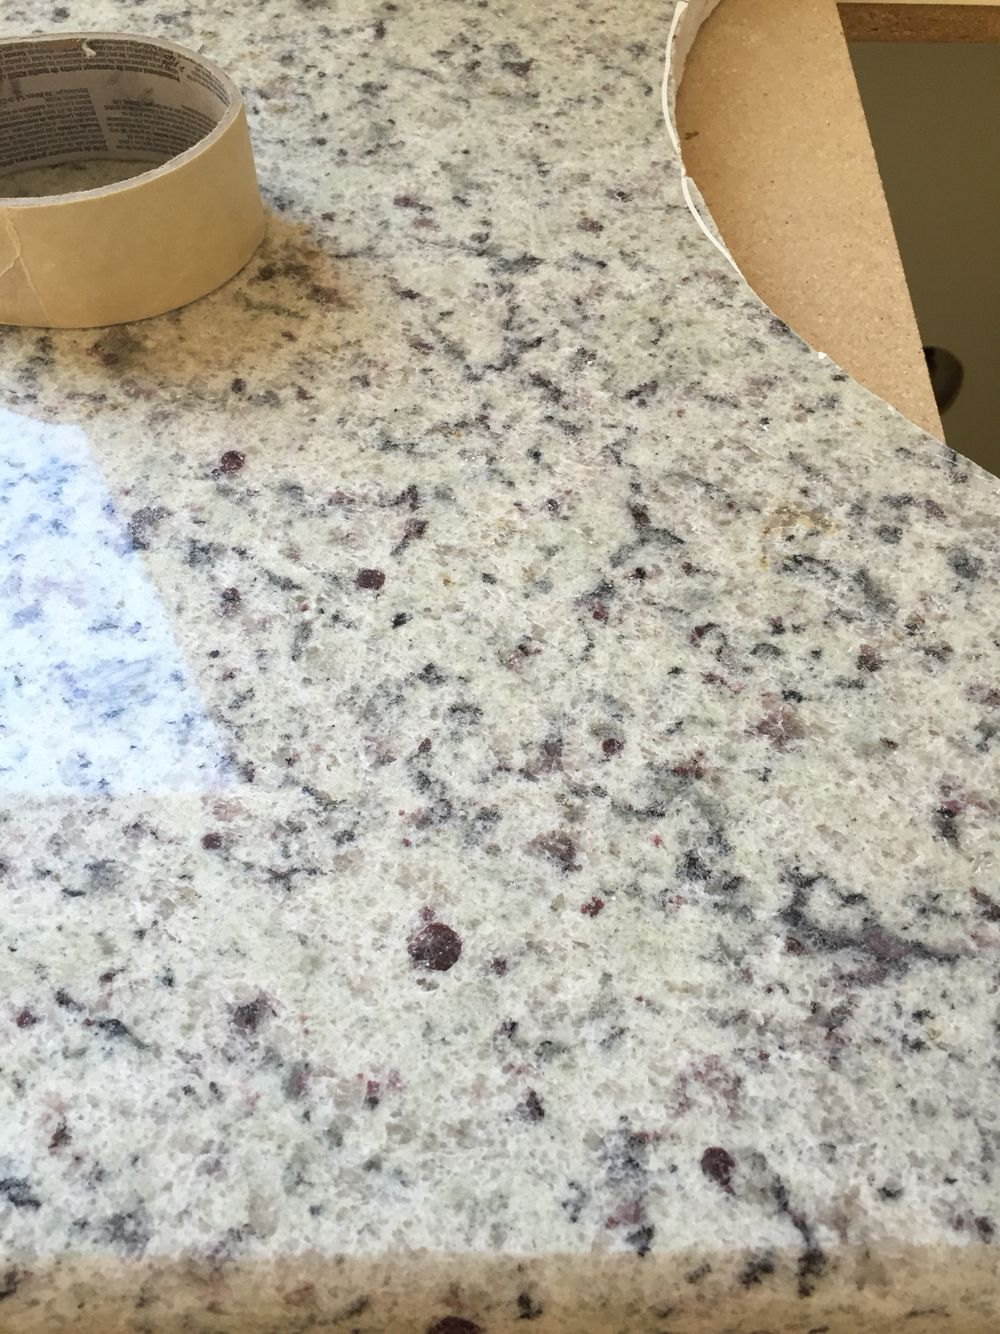 Dallas white granite | Home | Pinterest | White granite, Granite and ...